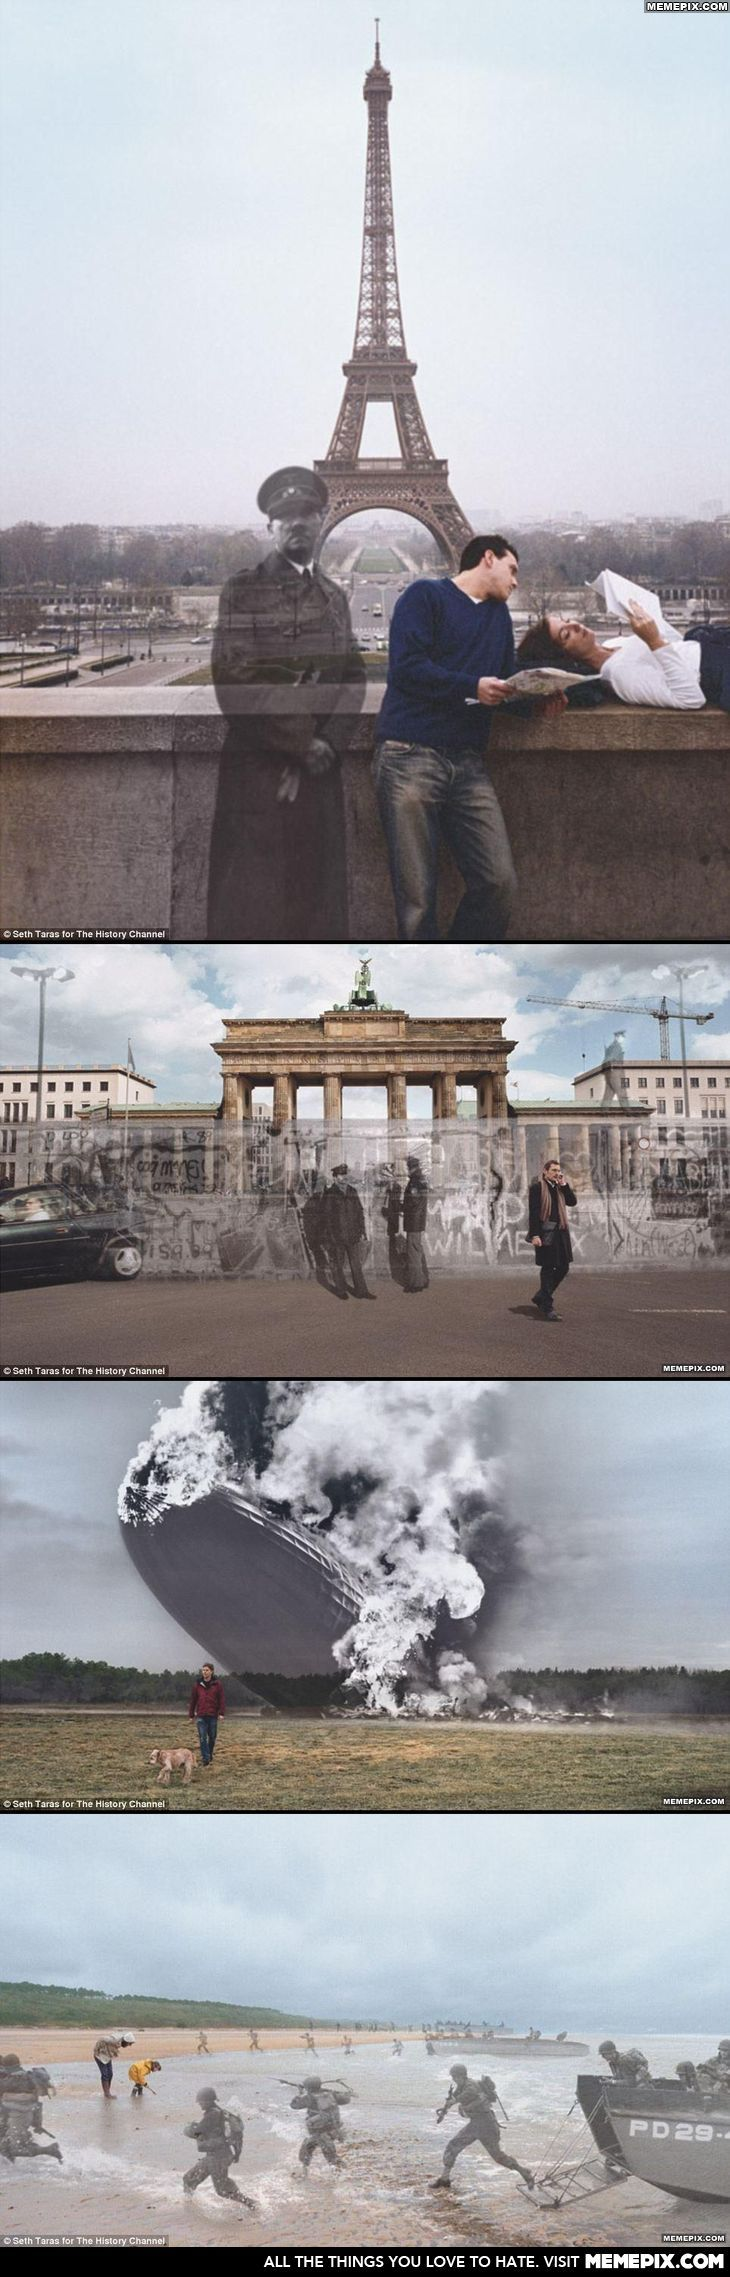 The History Channel's advertising campaign ..incredible